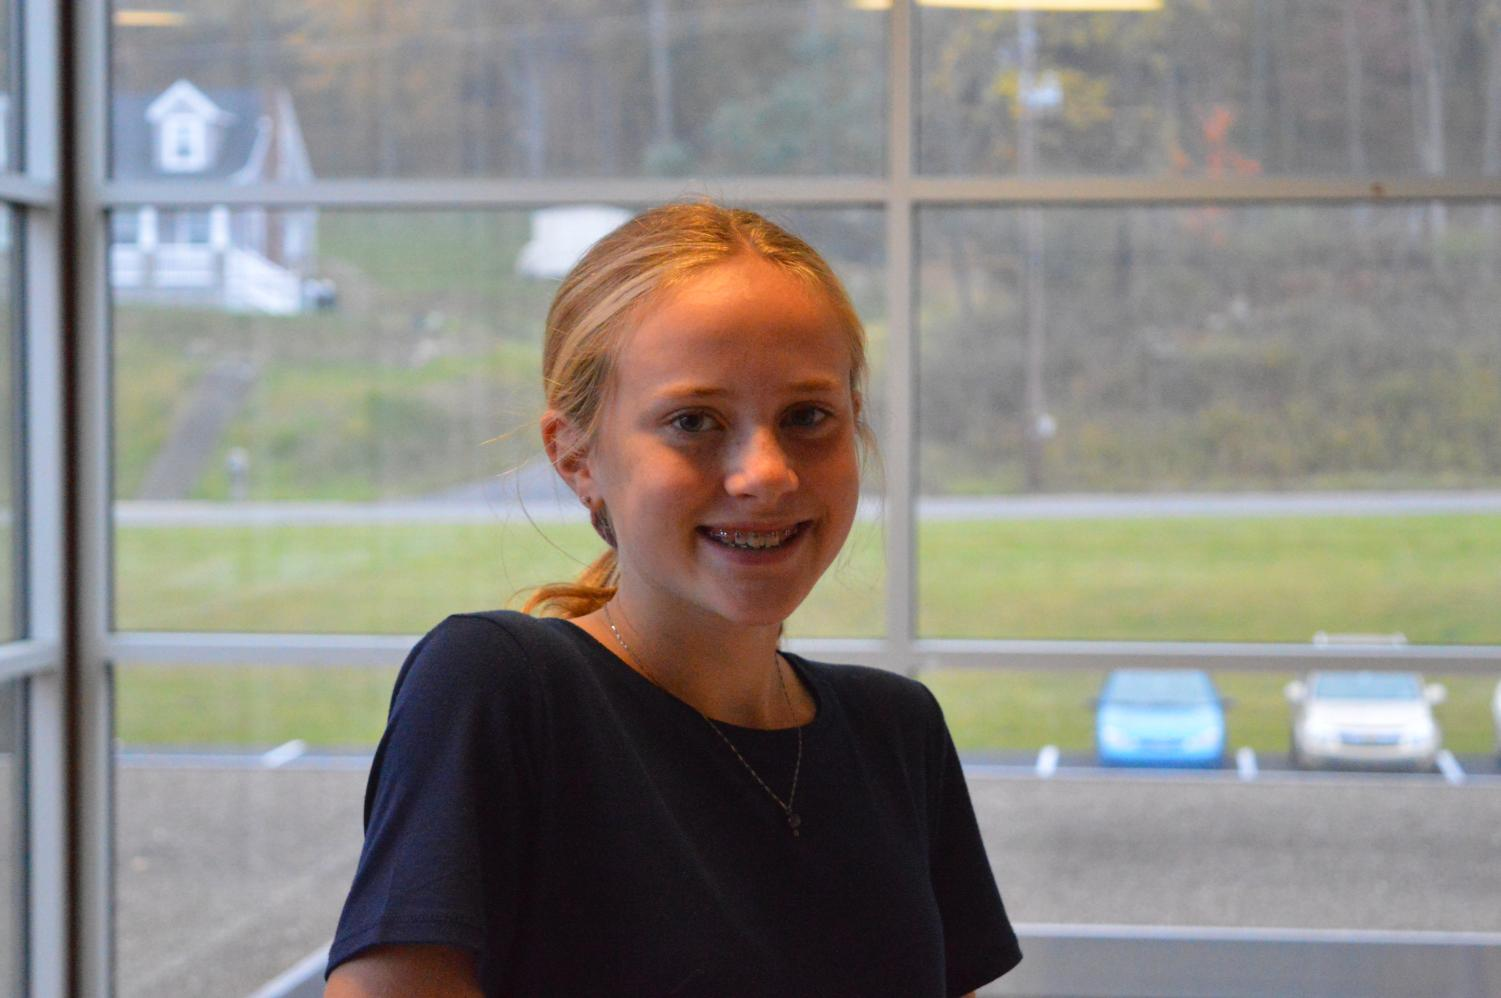 Freshman of the Week Beth Pearson is excited about the new freedom of High School and likes all of her new teachers.